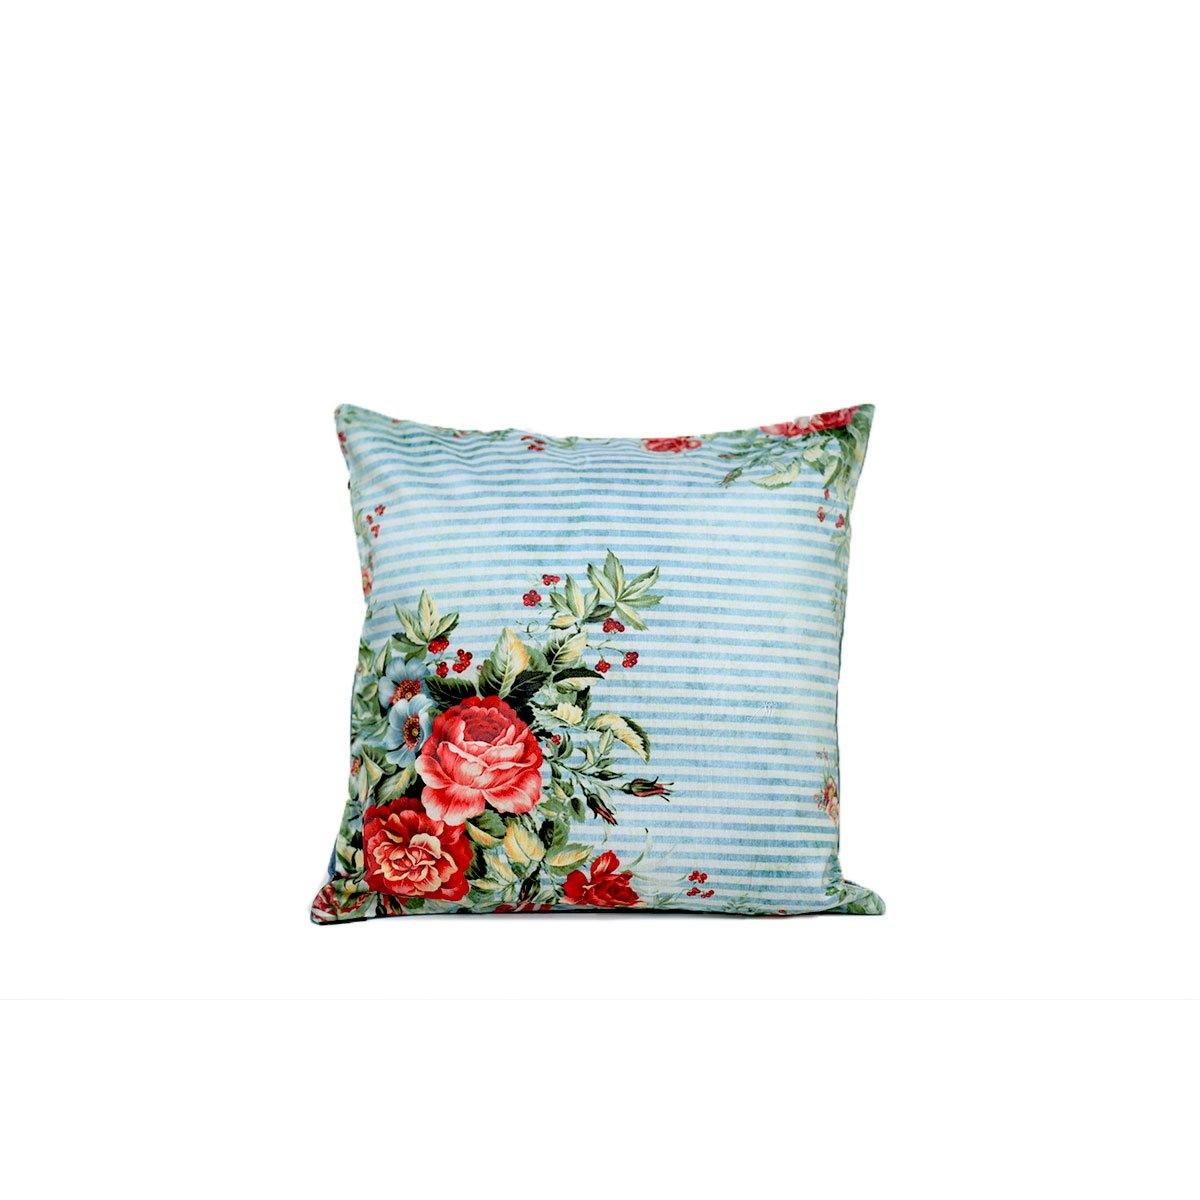 Flower & Lines Digital Cushions